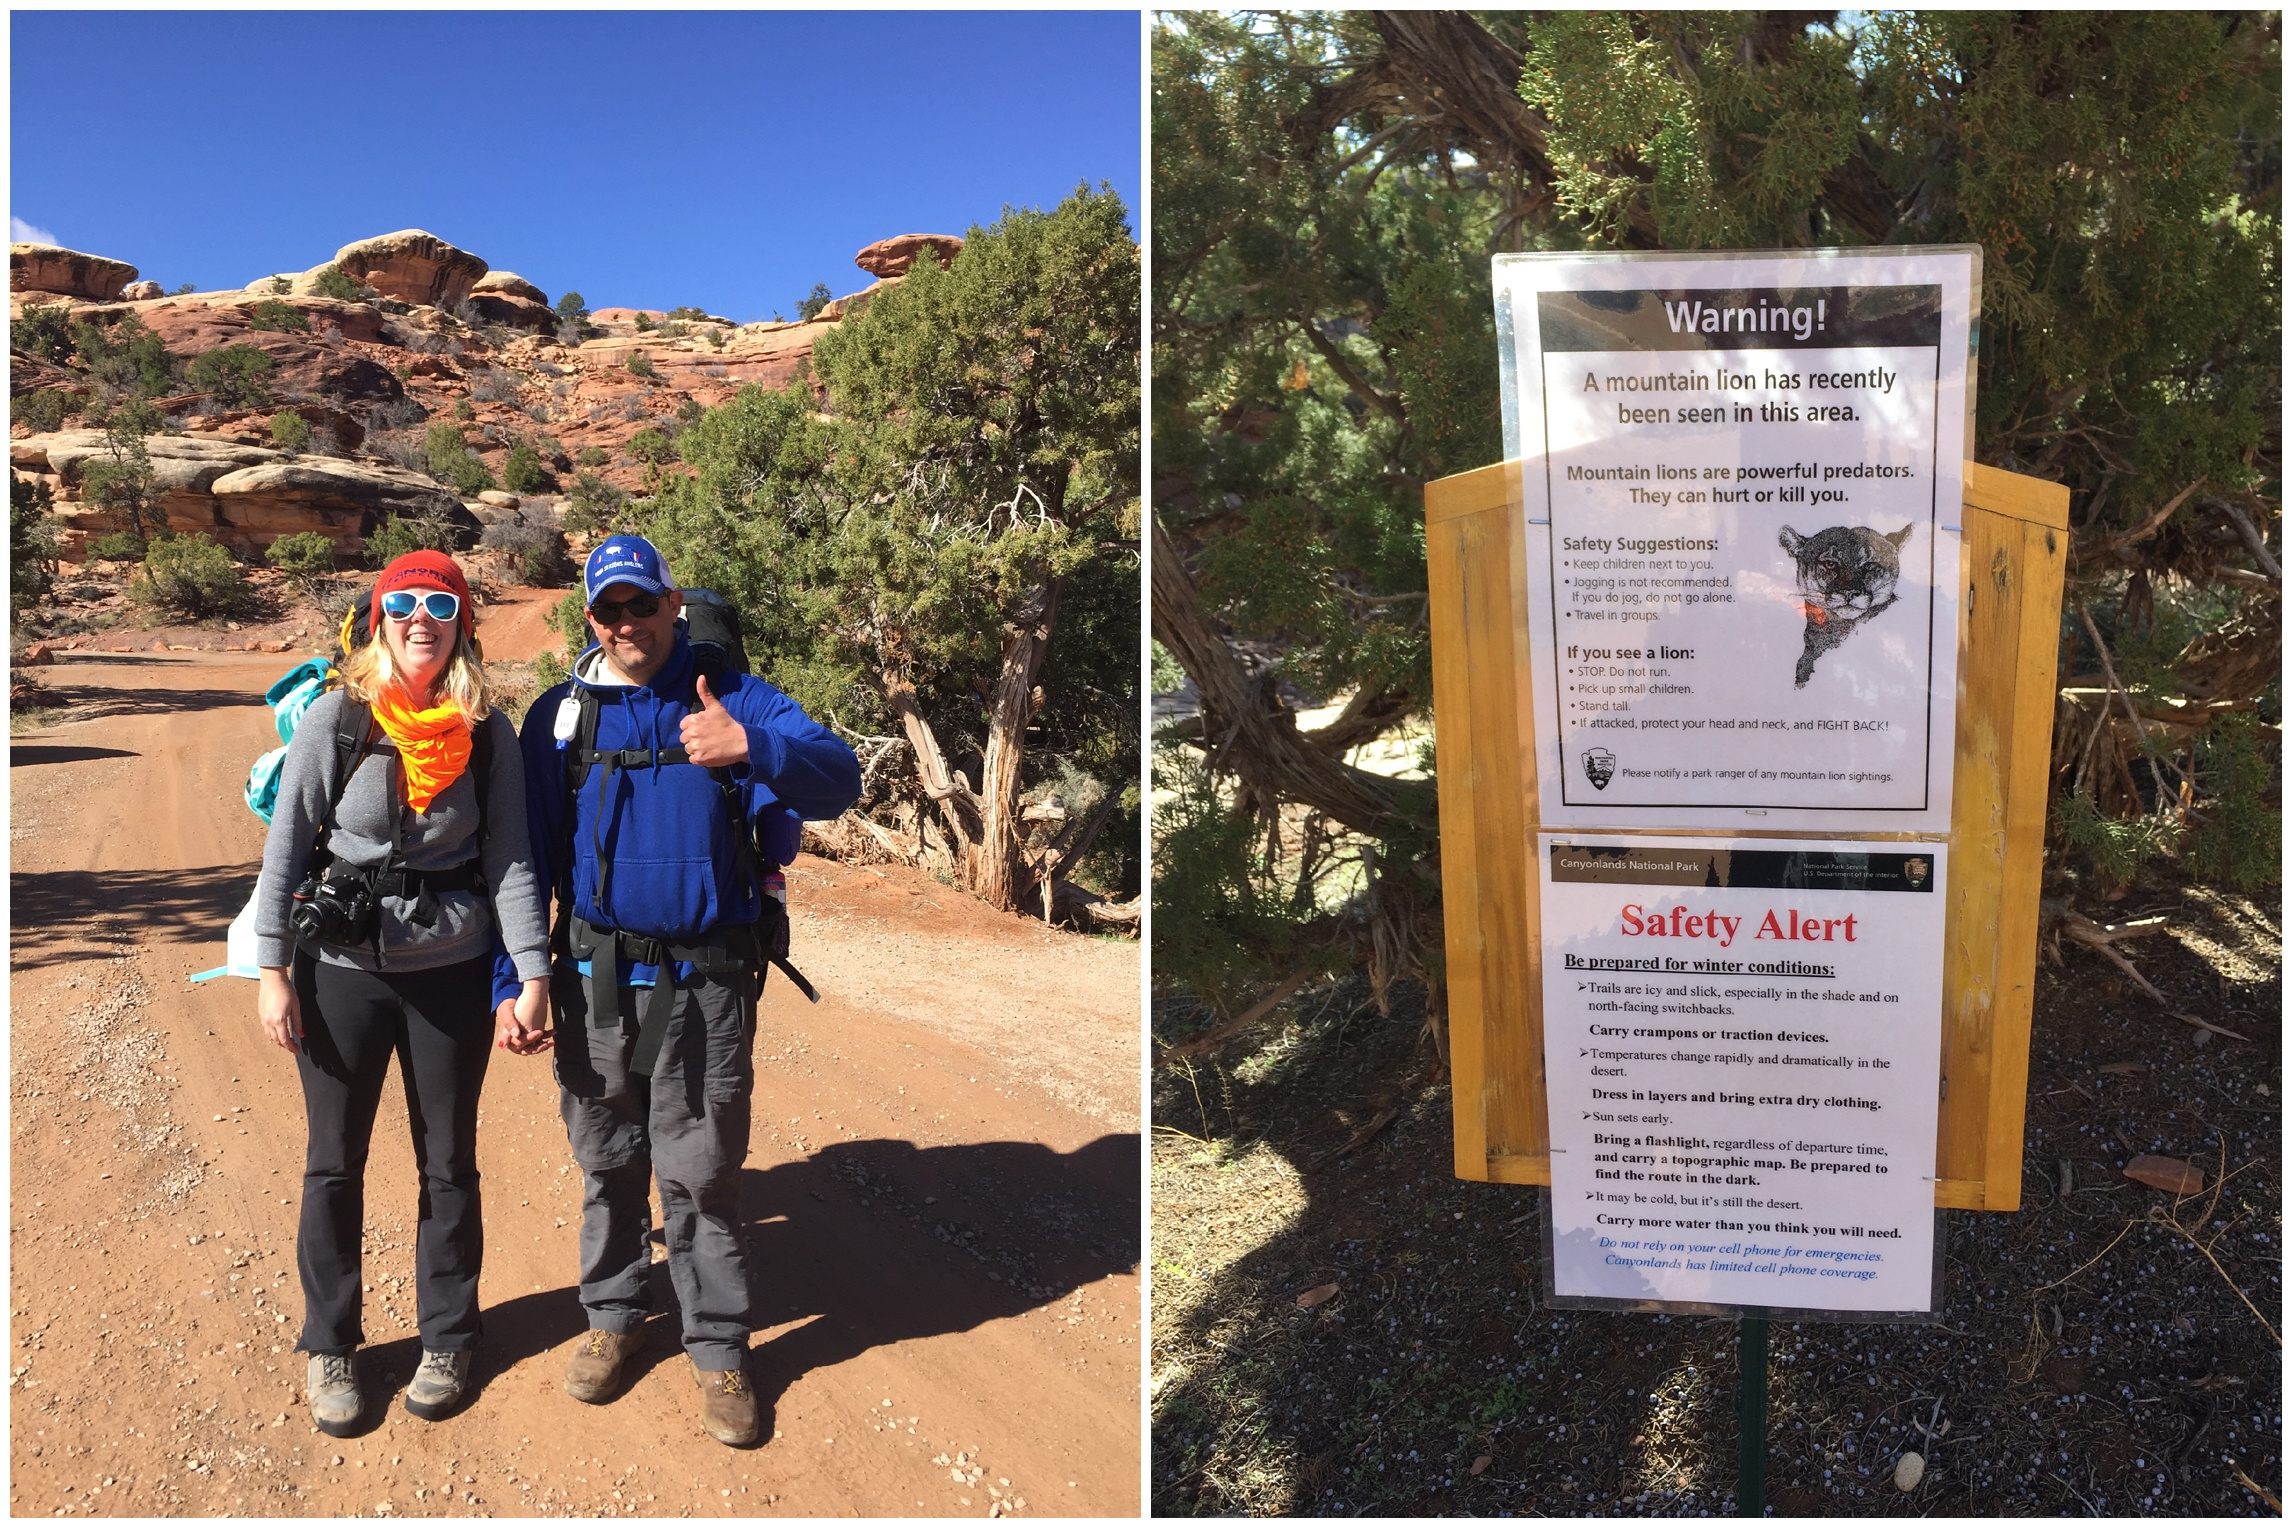 Sonja and Max at the Chesler Park Trailhead. A mountain lion warning for the area.